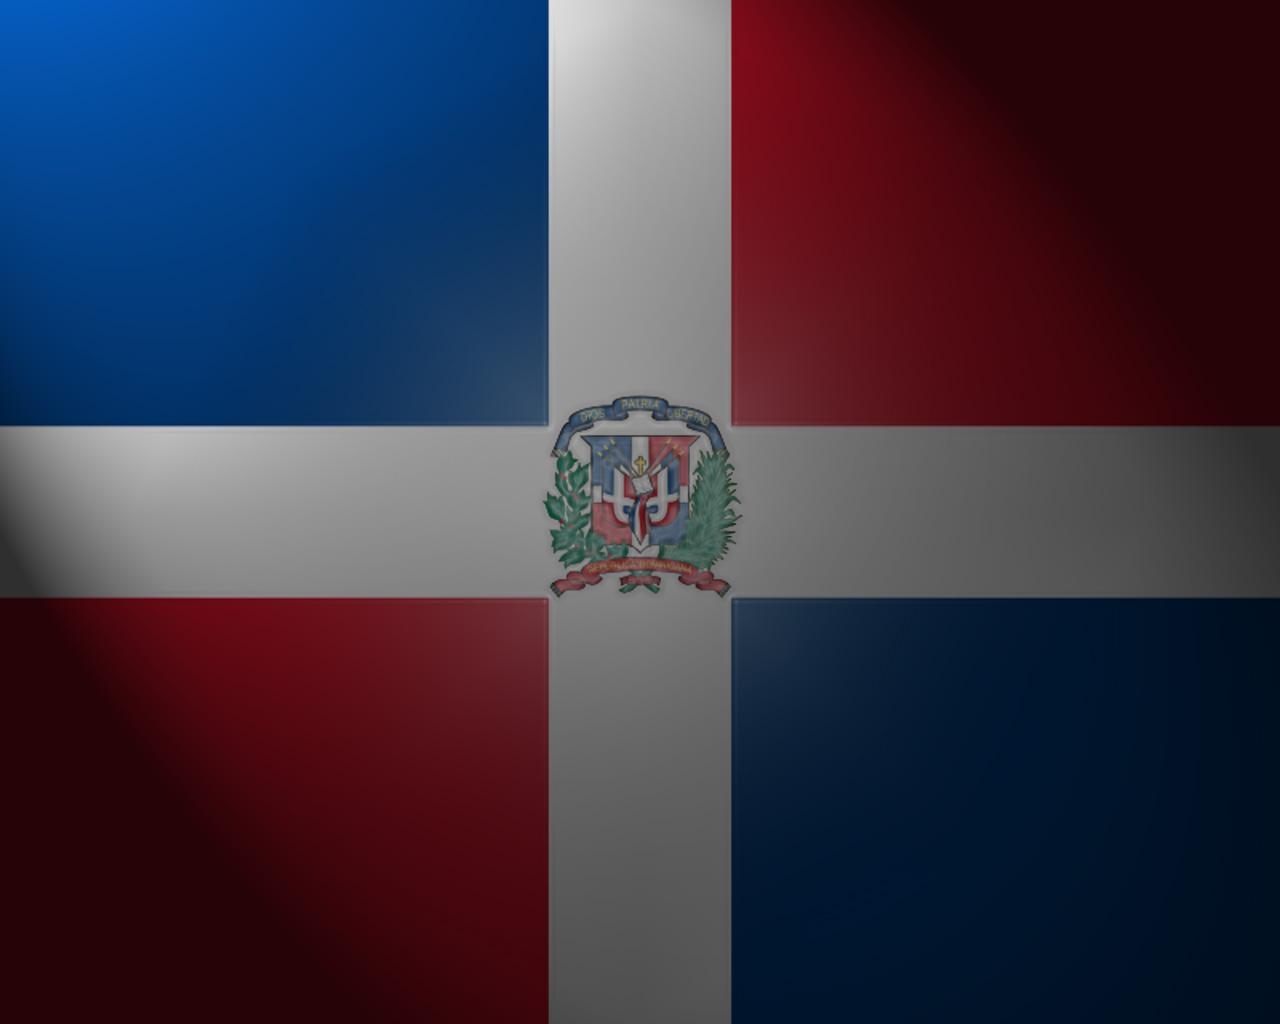 1280x1024 Dominican Republic Flag Wallpapers